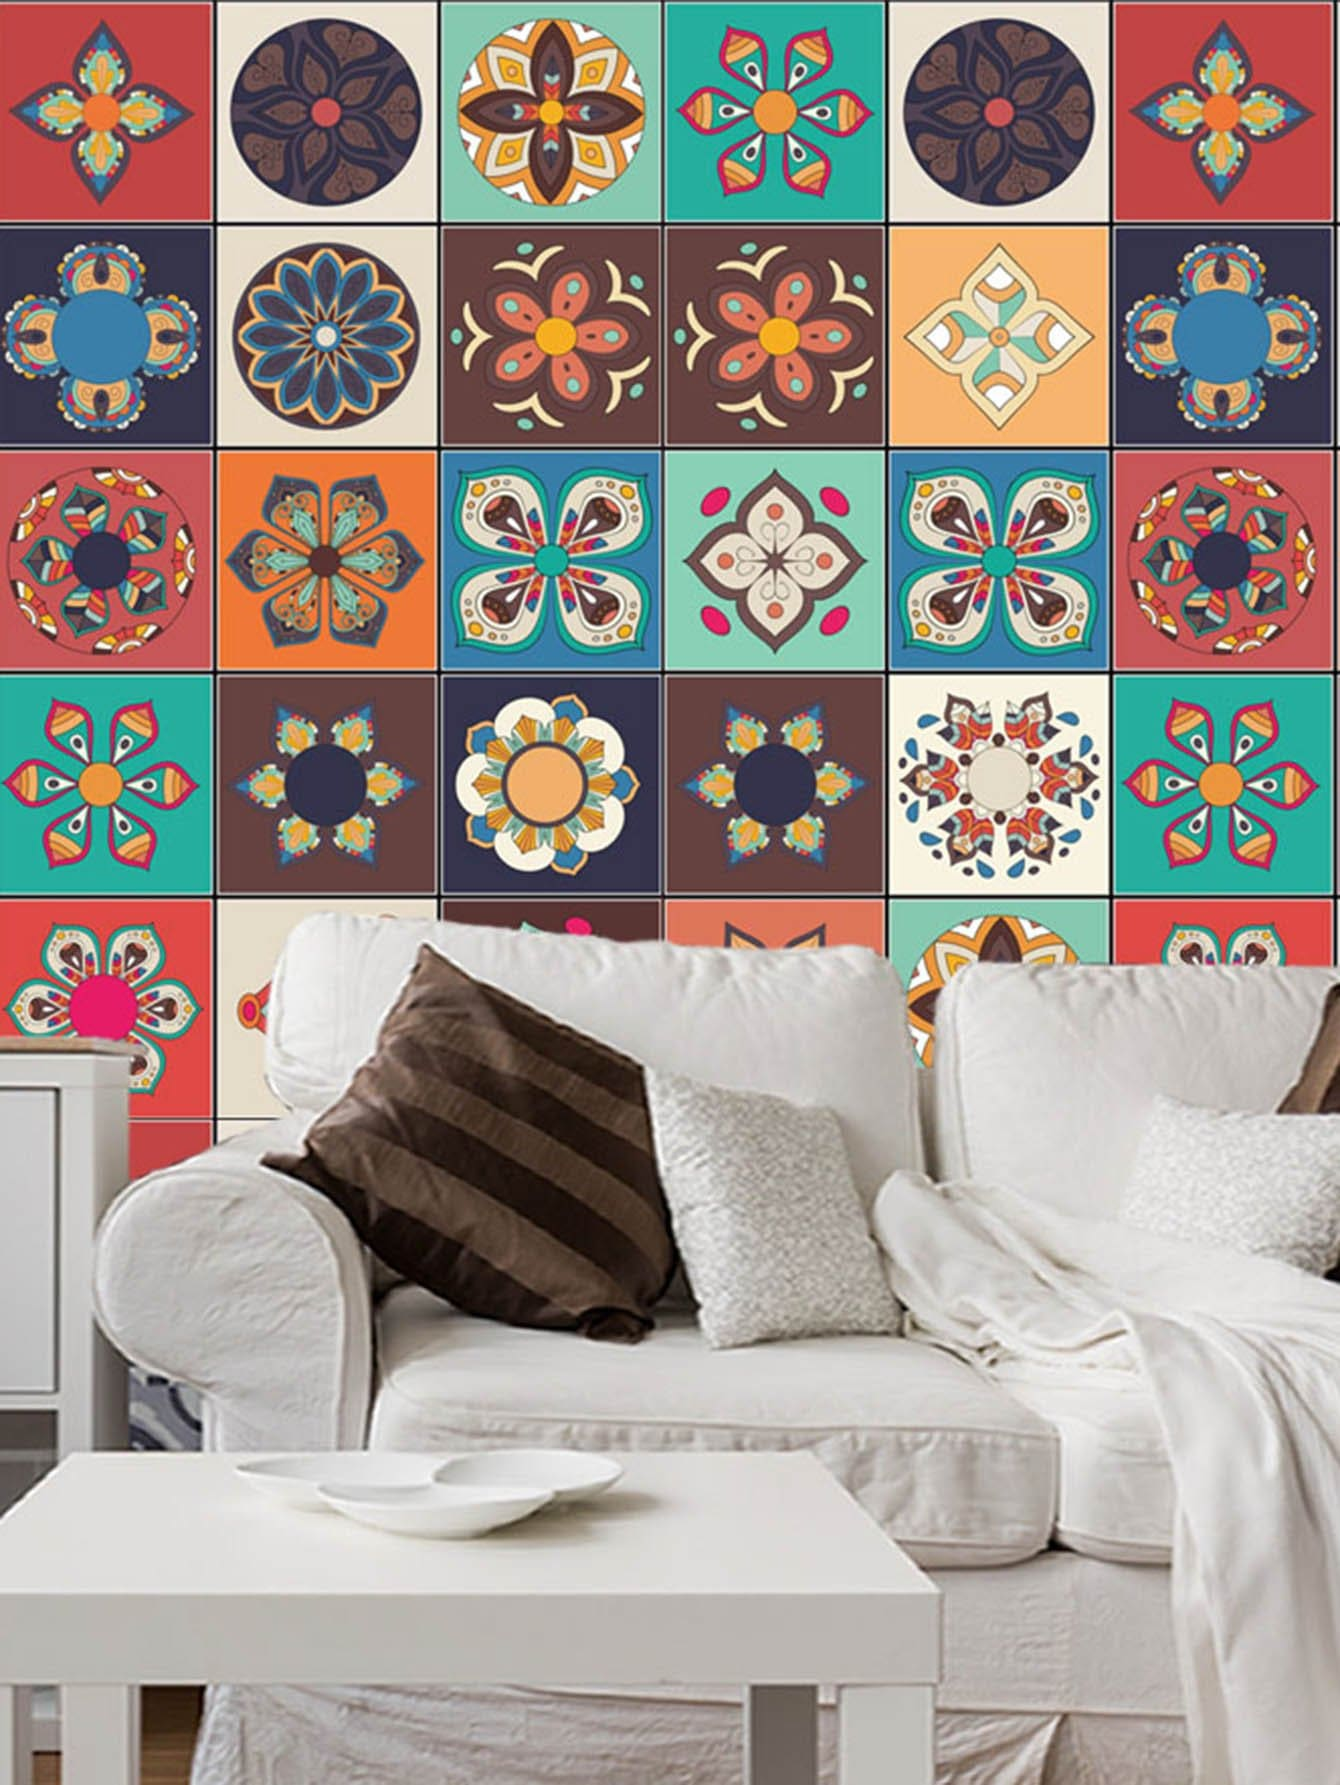 Random Abstract Flower Ceramic Tile Decal 1pc